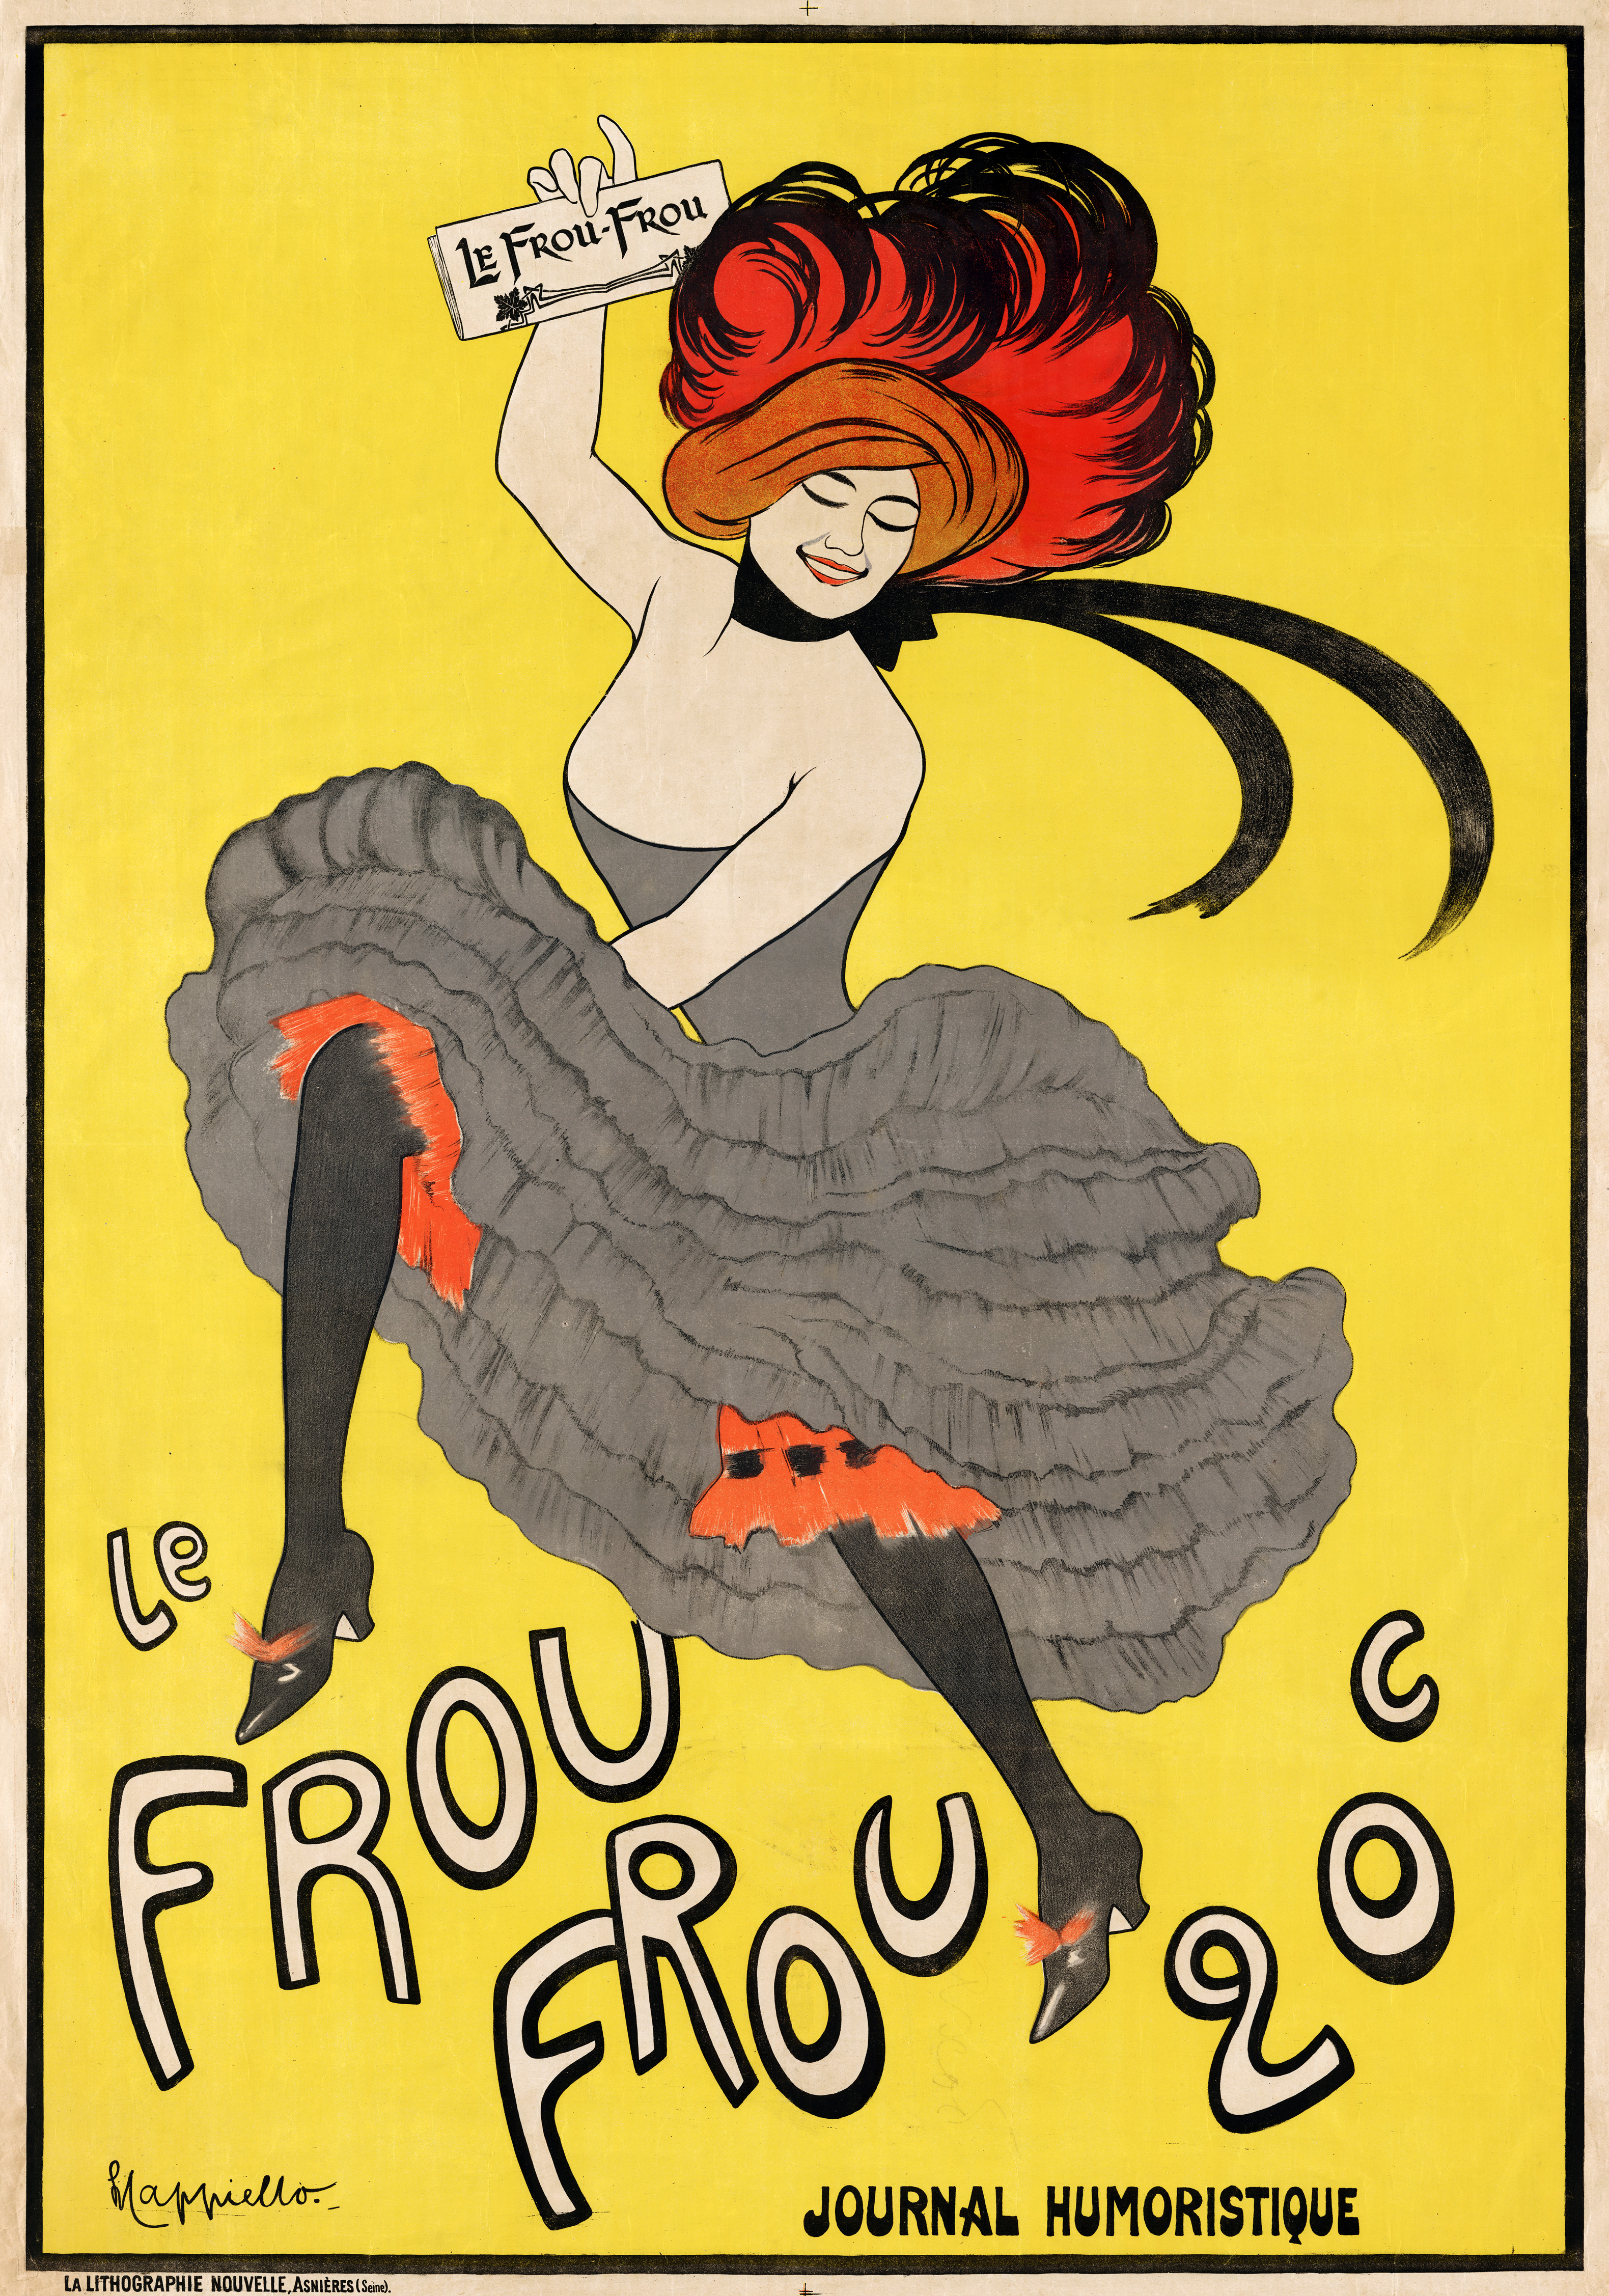 illustrational poster of a woman with red hair in a grey dress dancing against a yellow background